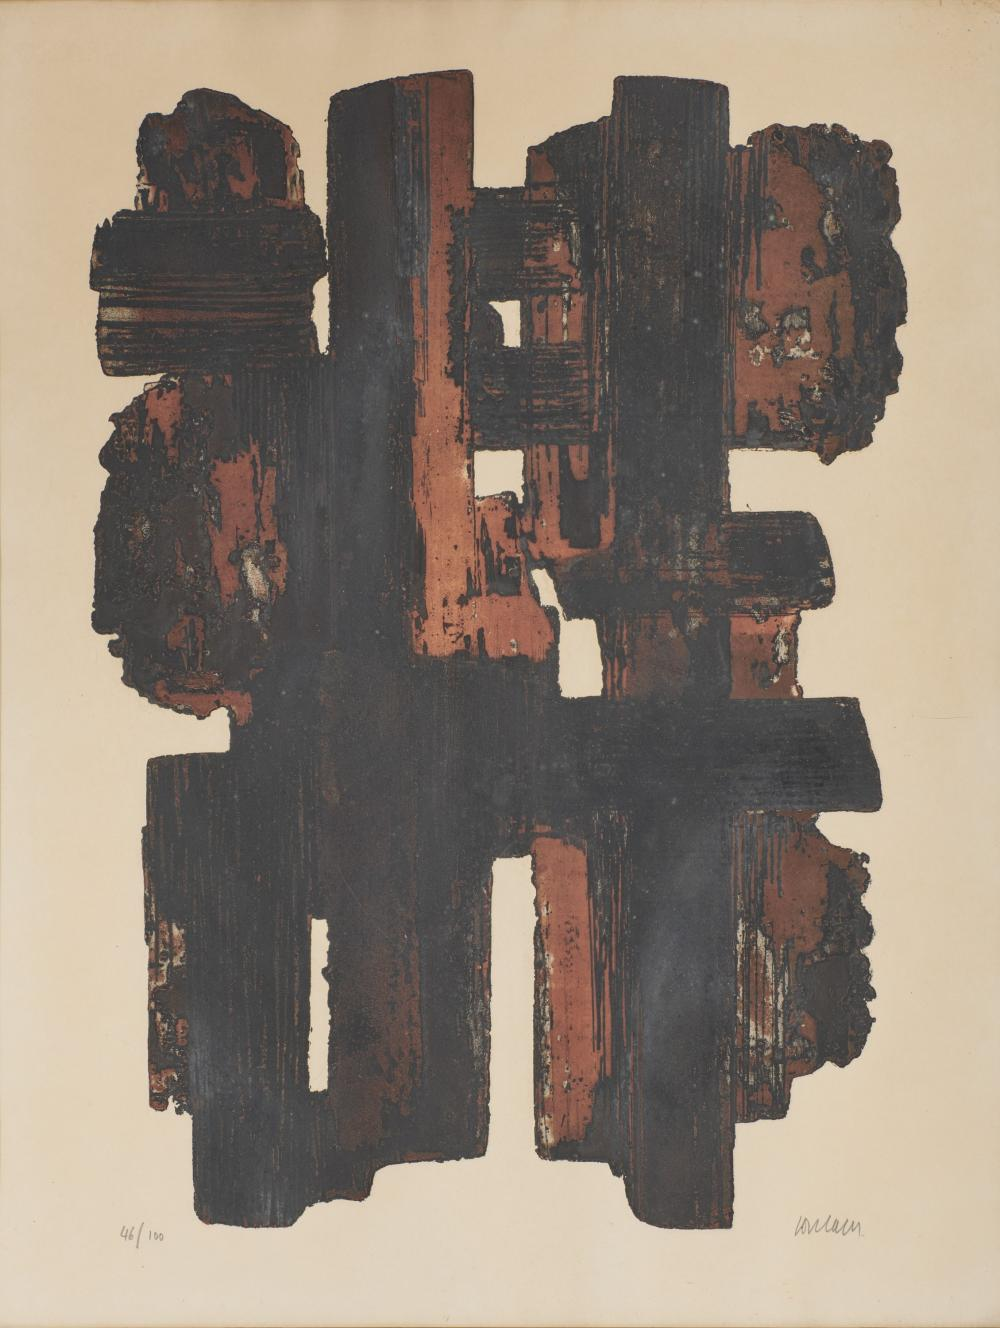 PIERRE SOULAGES, (French, b. 1919), Eau-Forte IX, color etching, sight: 24 1/2 x 19 in., frame: 27 3/4 x 22 in.